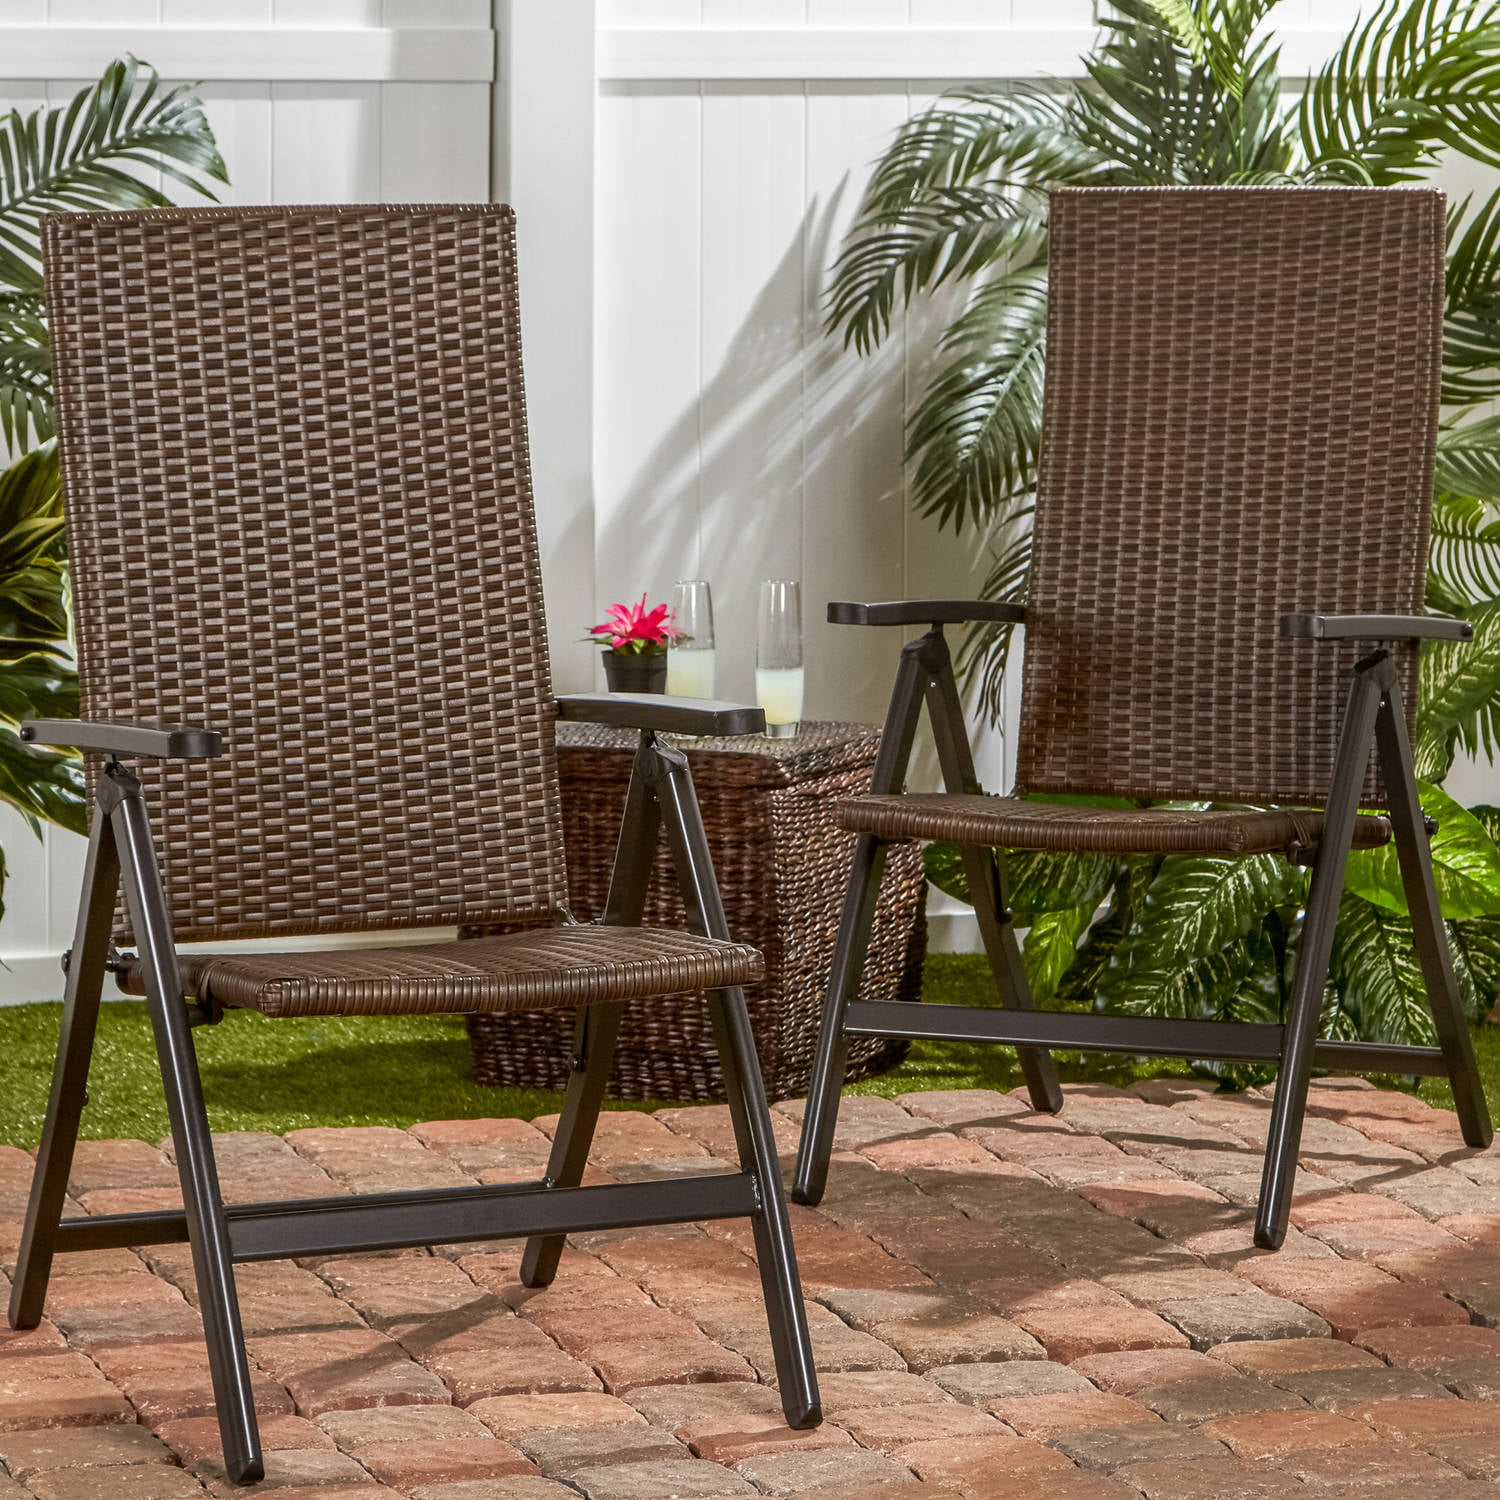 hand woven pe wicker outdoor reclining chairs set of 2 walmart com